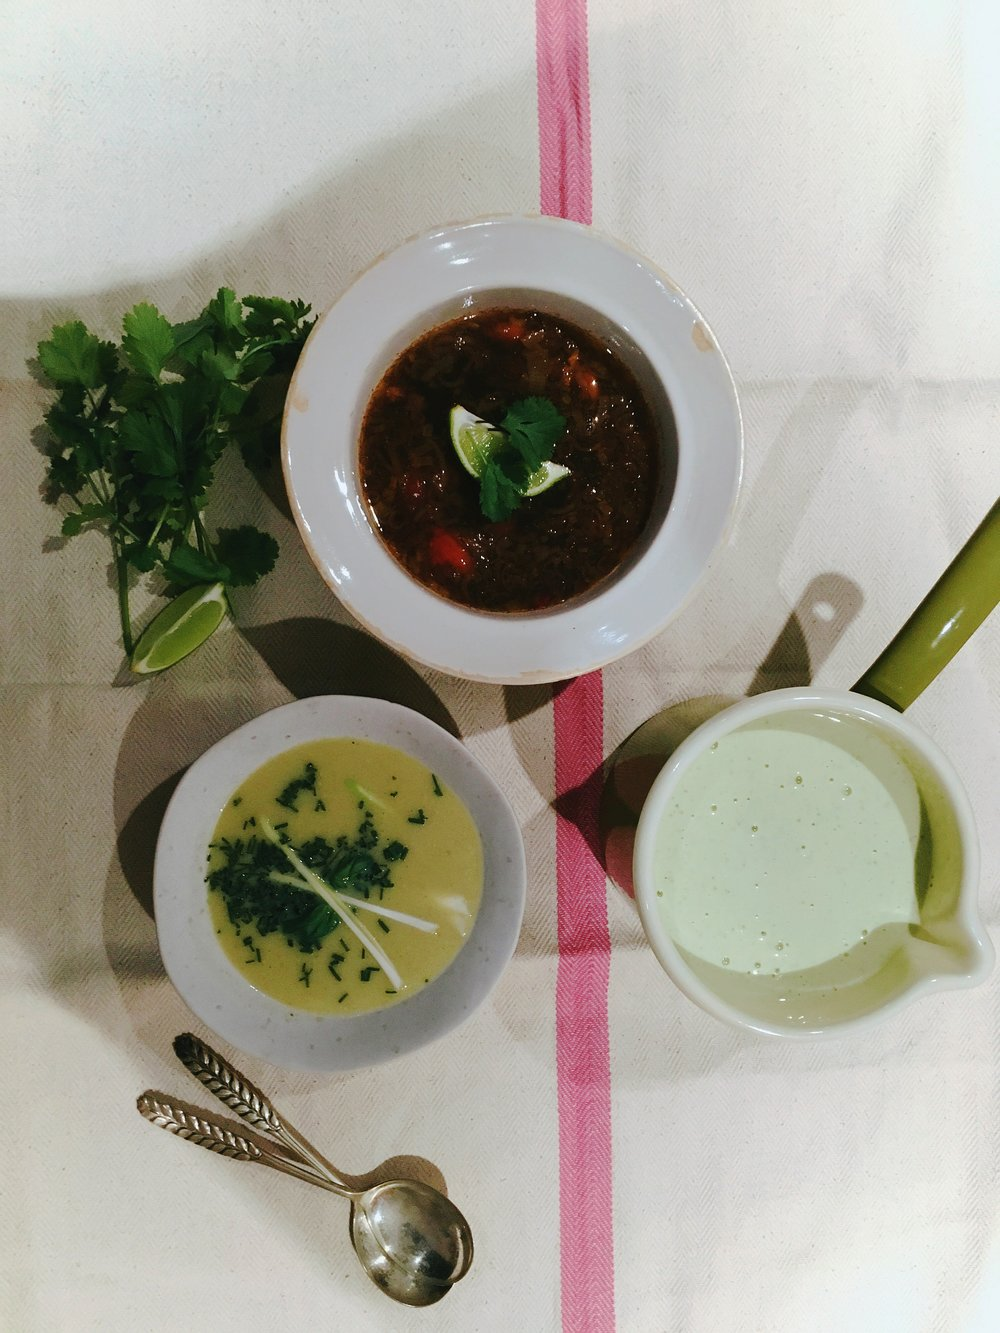 Soups, including a cucumber + coconut soup which I am addicted to